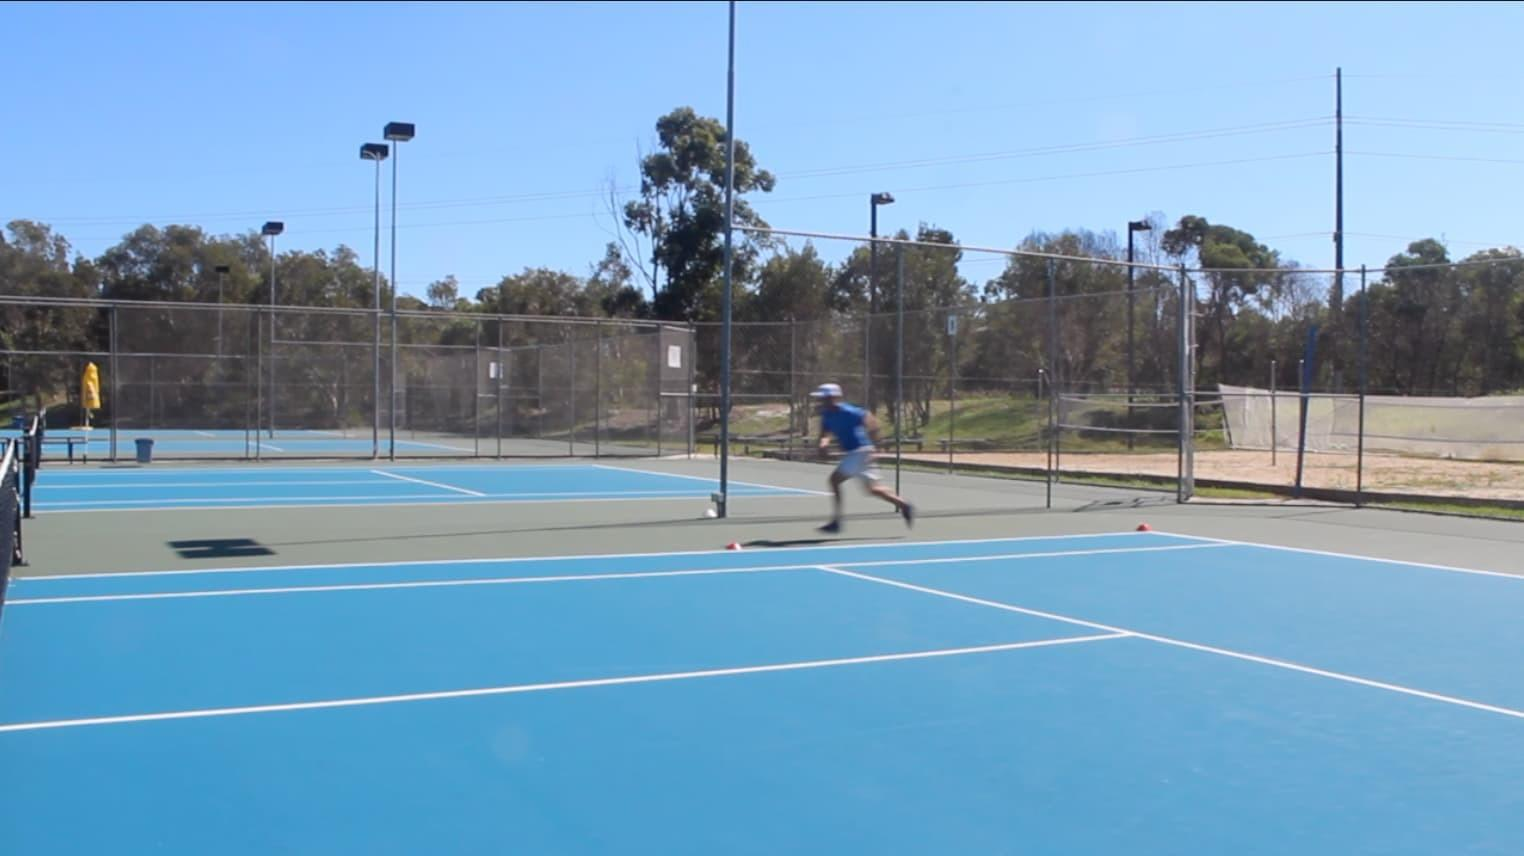 image tennis conditioning